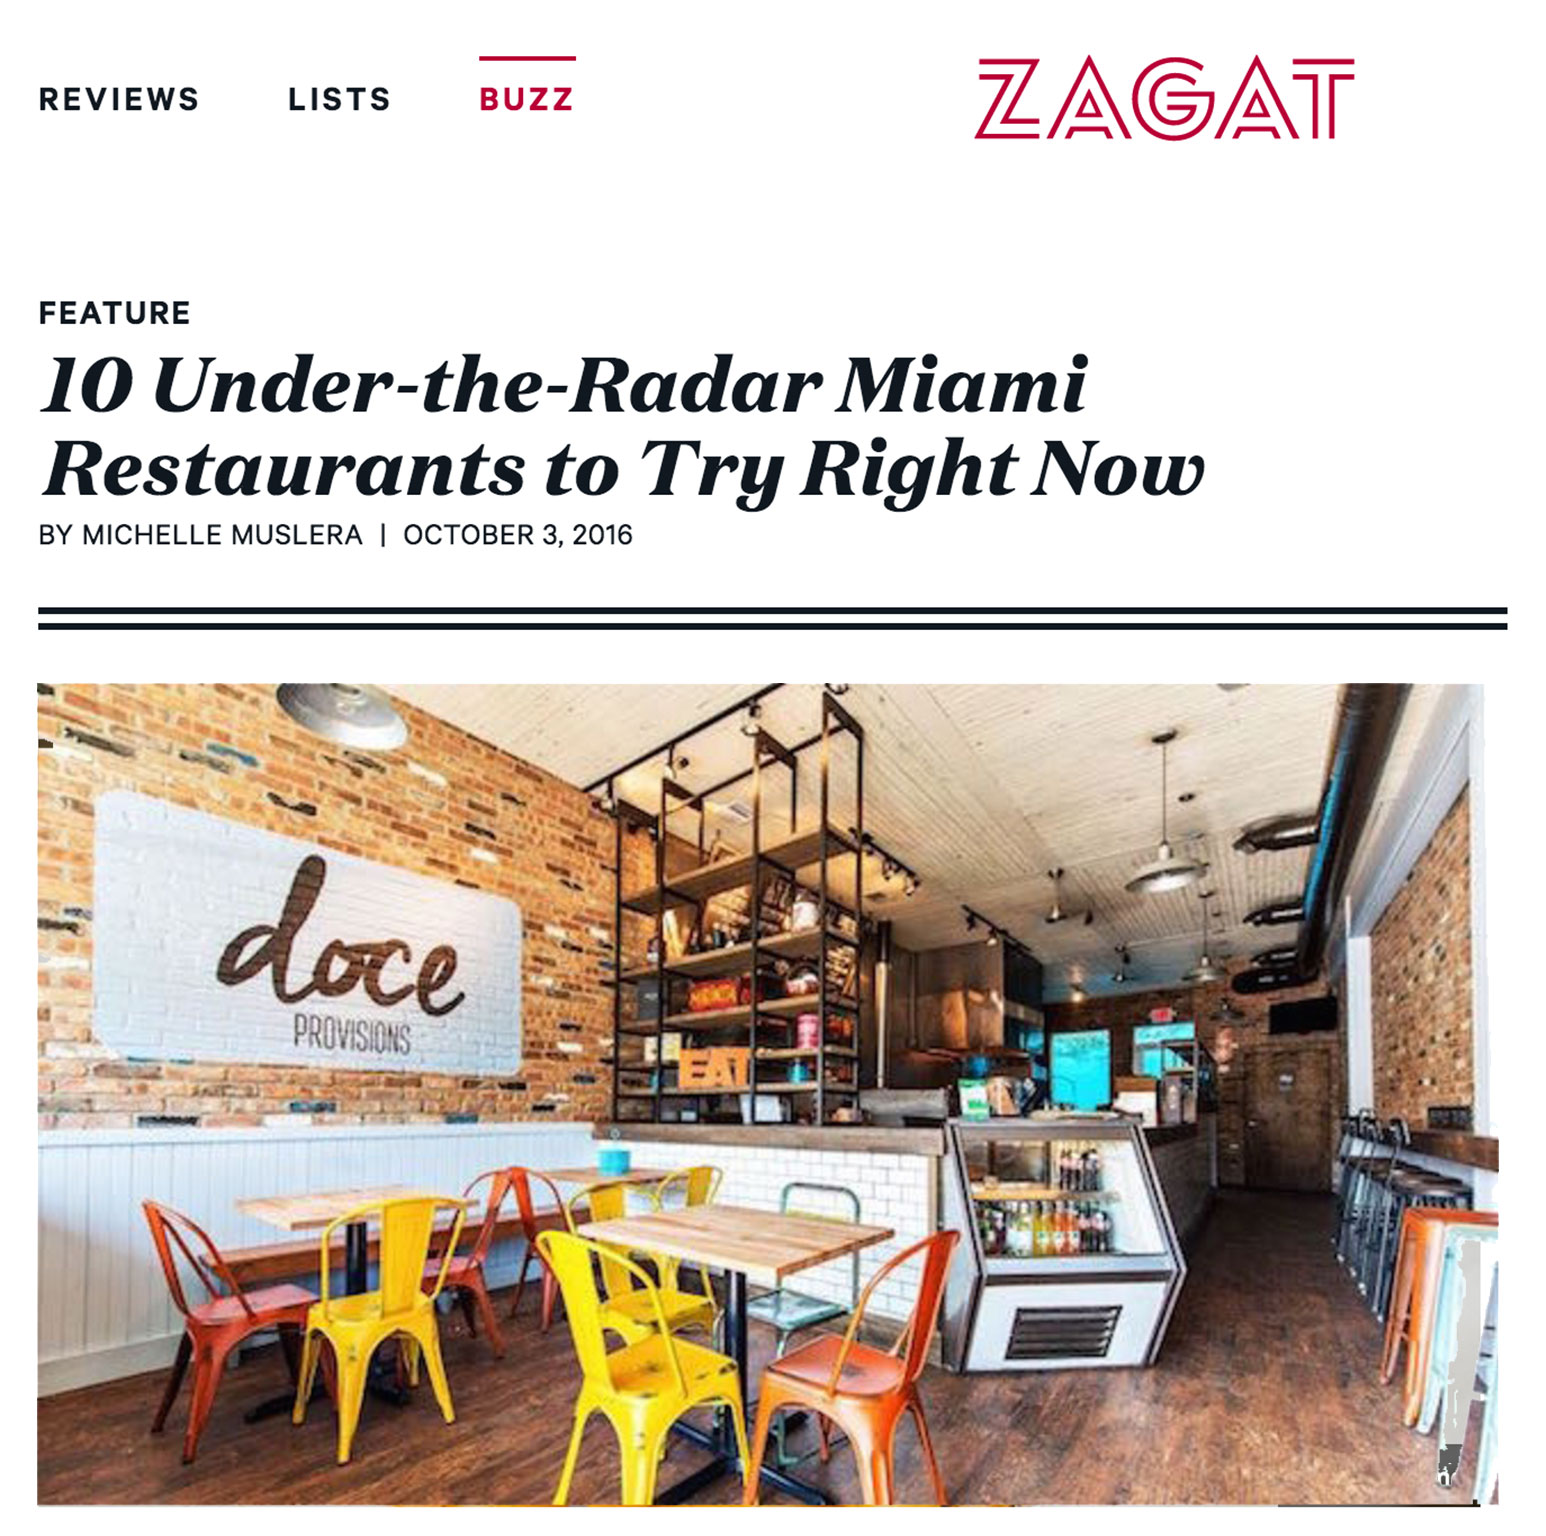 10 Under-the-Radar Miami restaurants to try right now ...  READ MORE